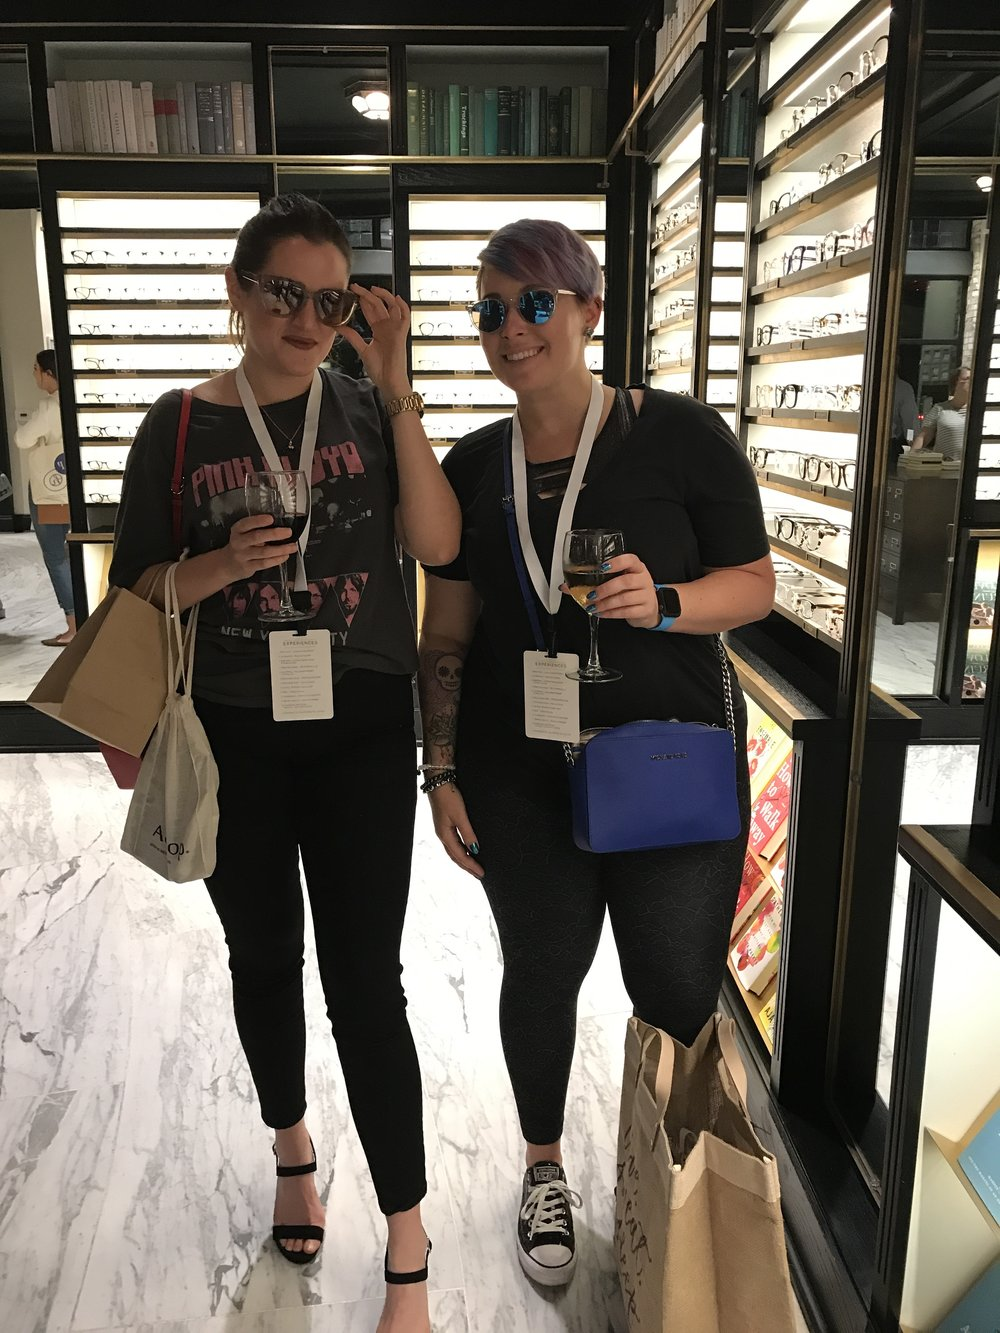 Sarah Maingot & Caiyln Connolly are lookin' fly as they try on different styles of Warby Parker sunglasses.